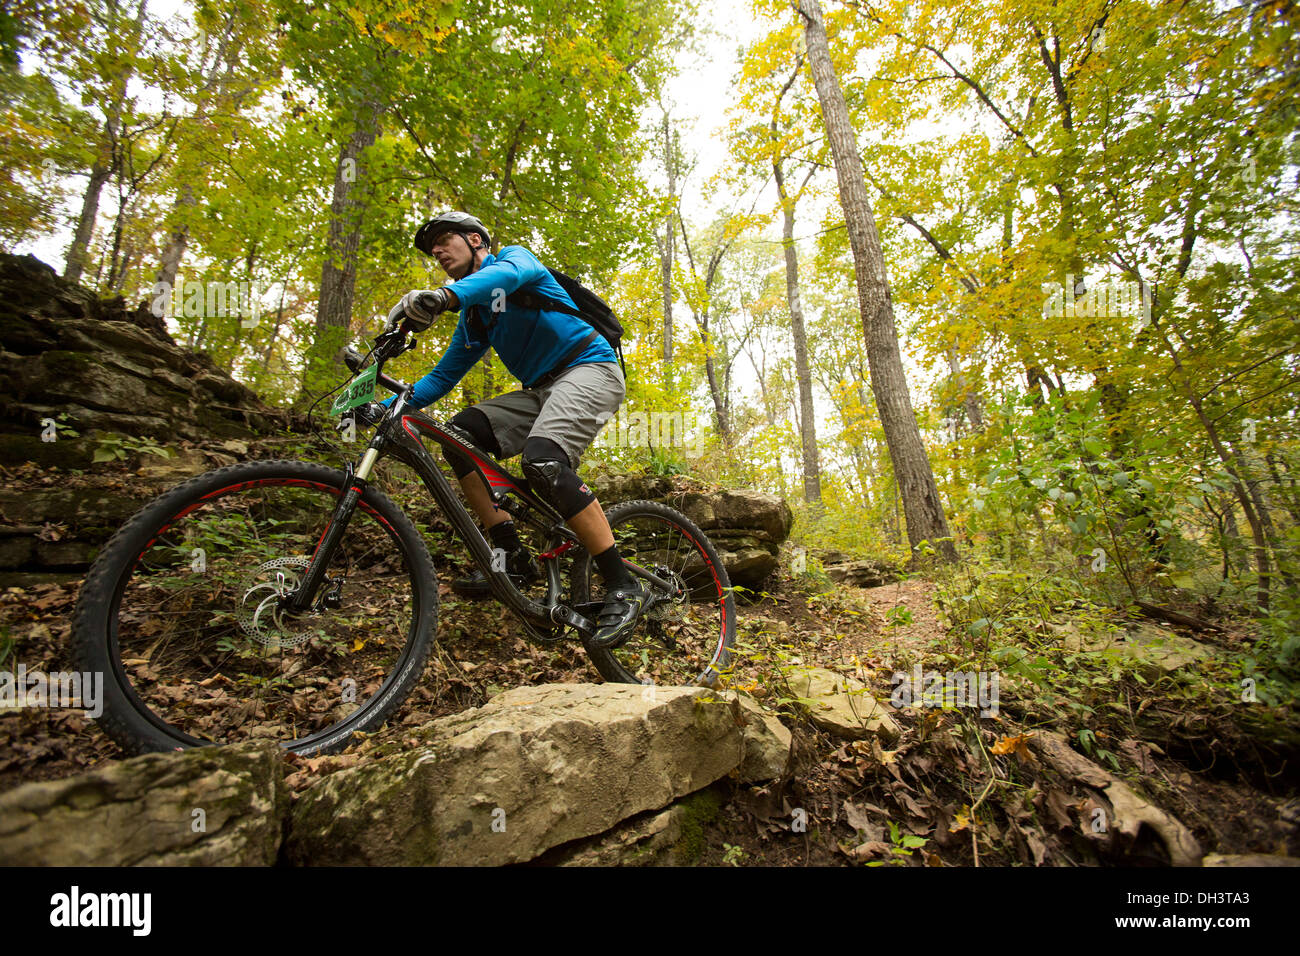 A mountain biker rides along a forest trail system at Blowing Springs Park in Bella Vista, Arkansas. Stock Photo